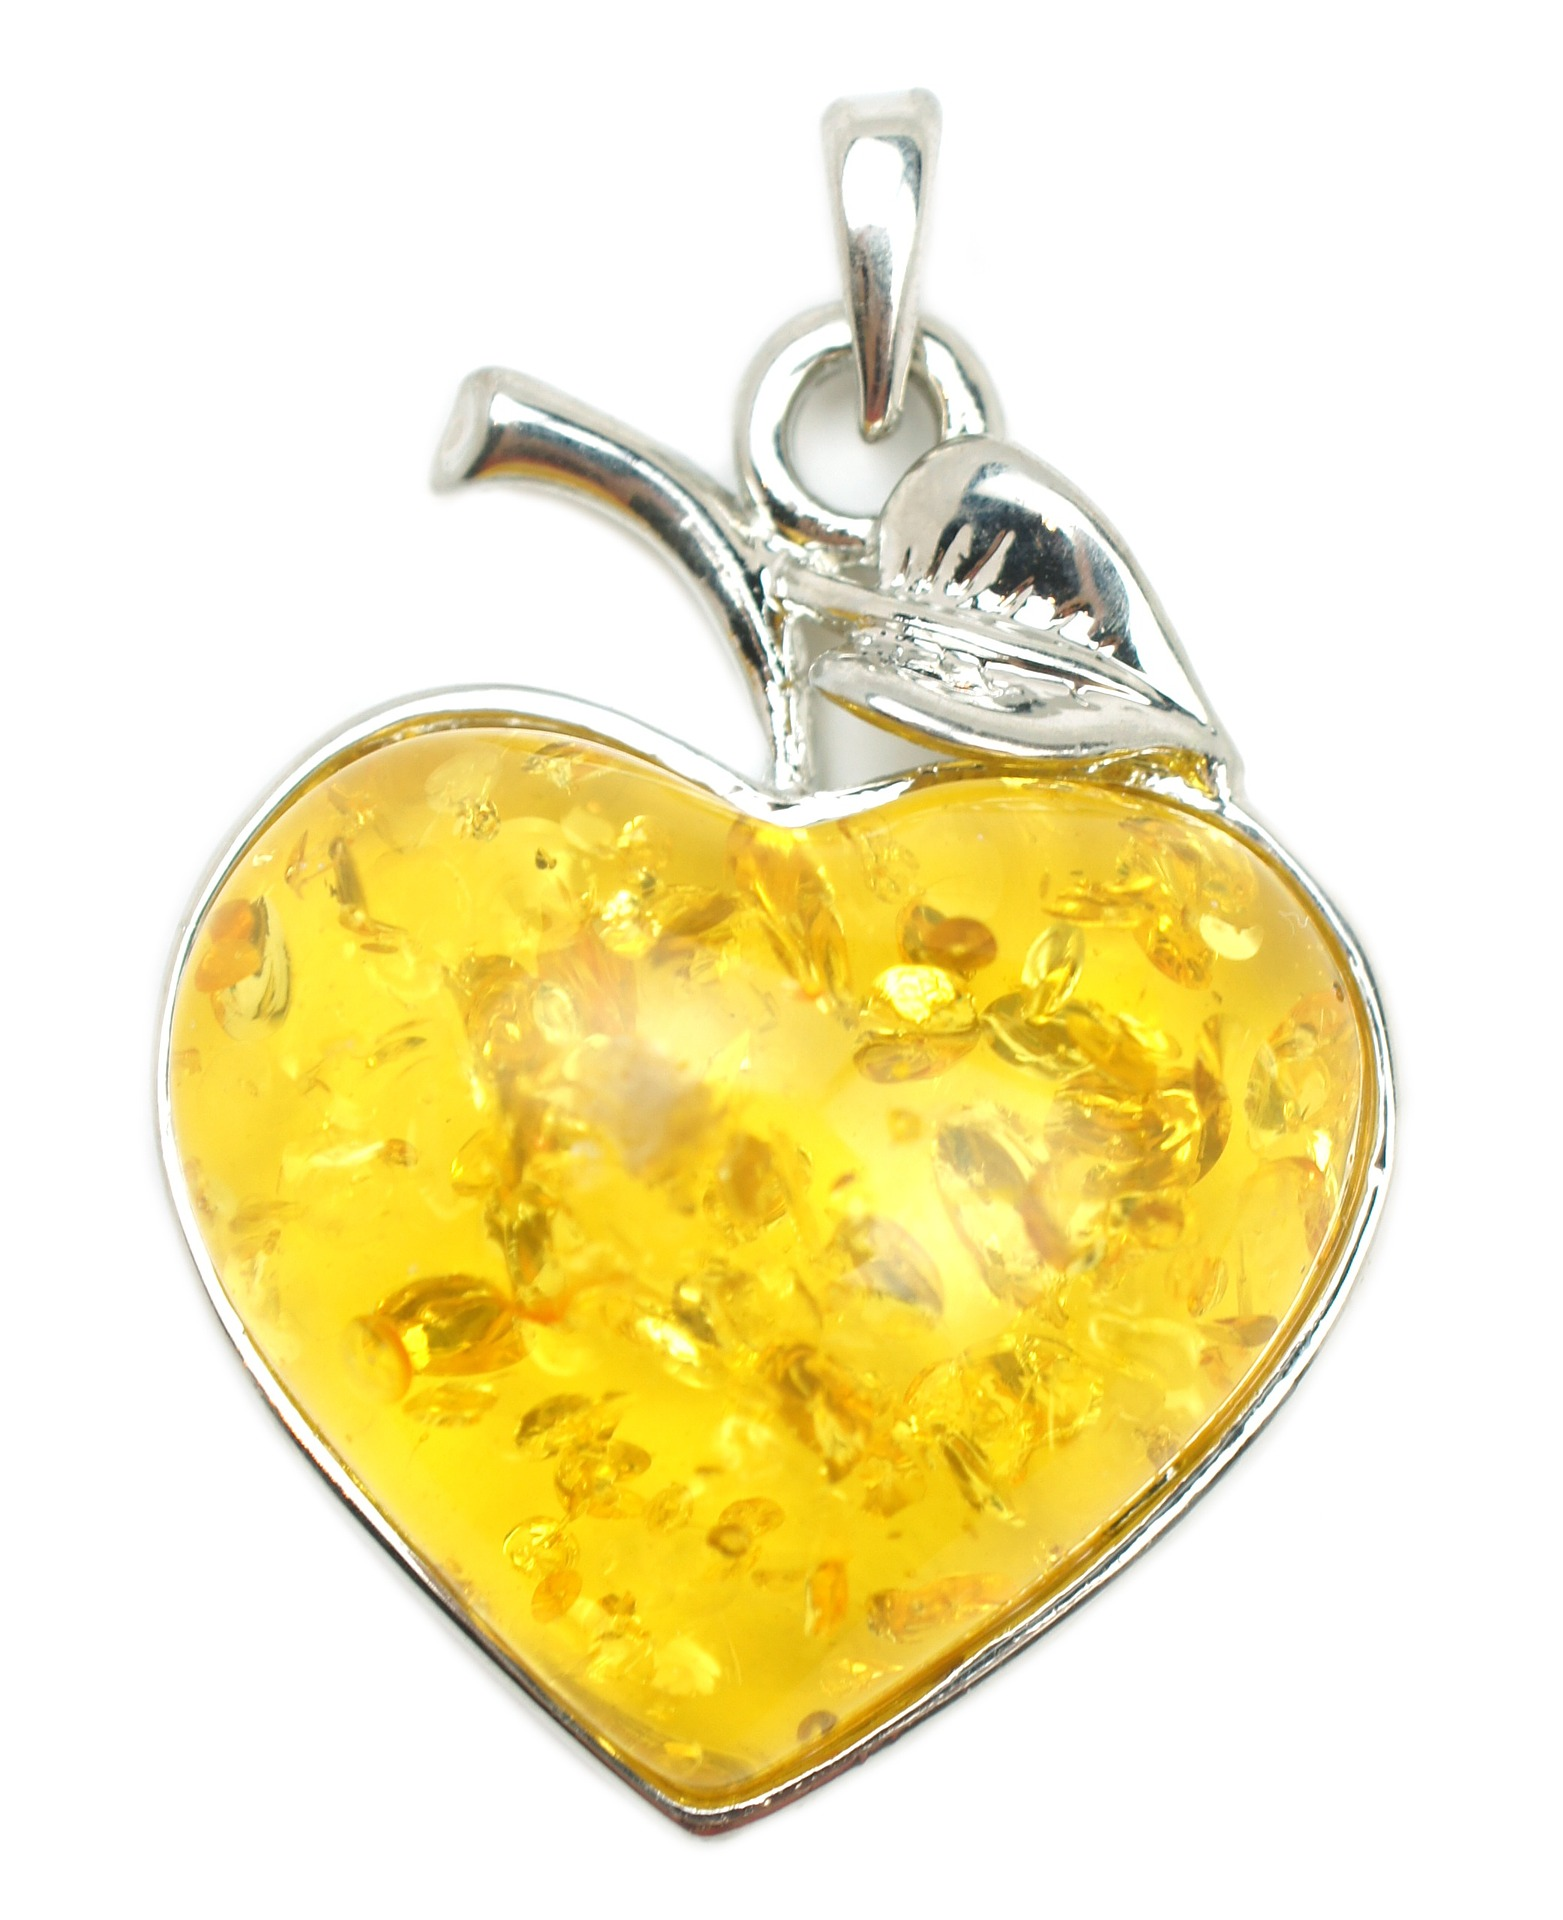 A yellow resin heart-shaped jewelry pendant. Photo courtesy of starbright on Pixabay.